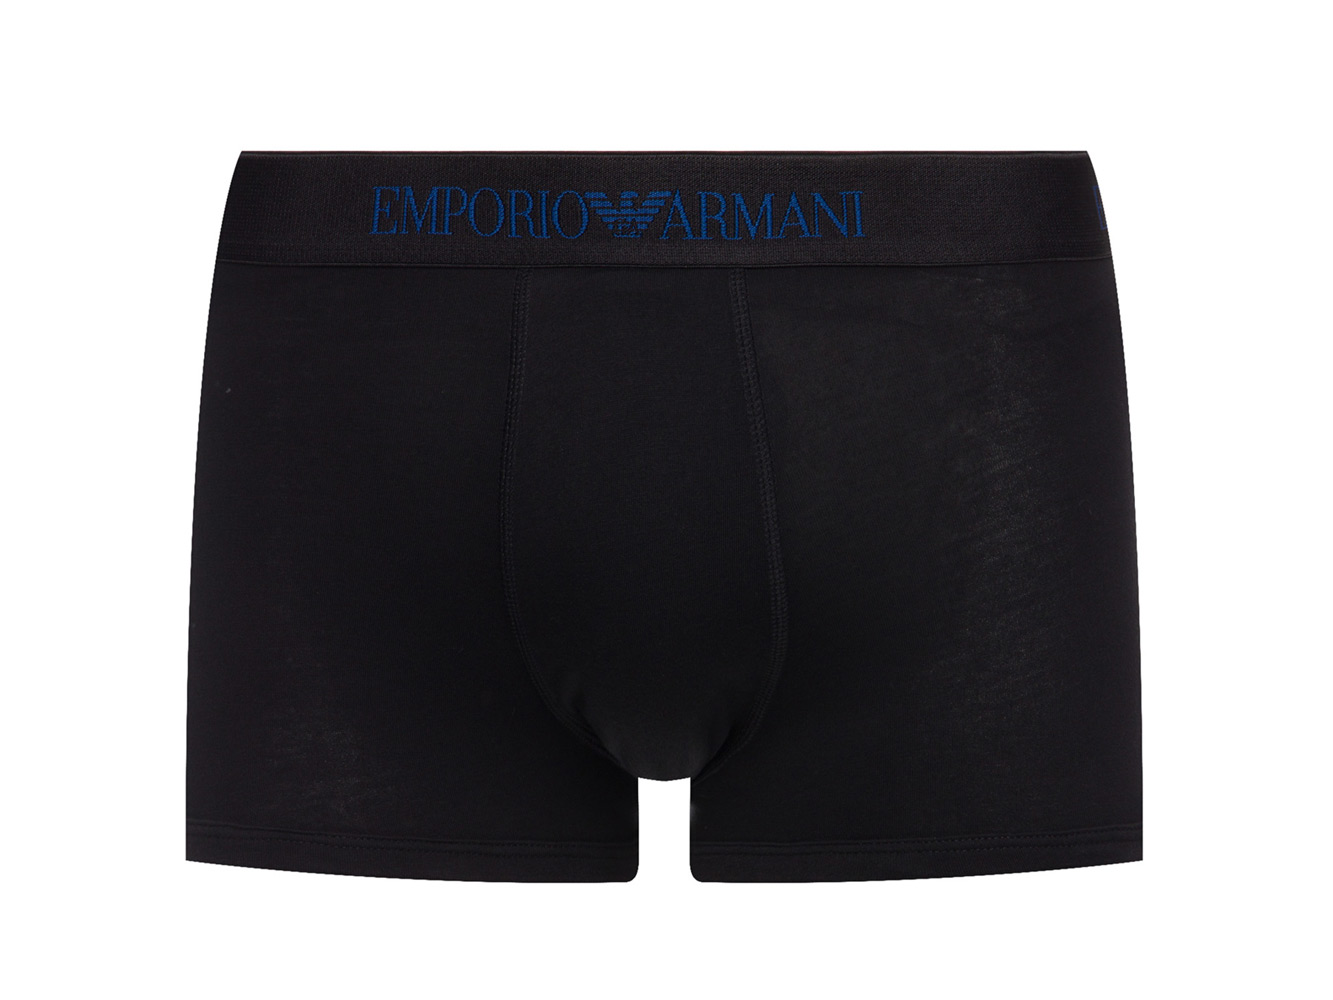 EMPORIO ARMANI boxerky Pure Cotton 3 pack - Blue4